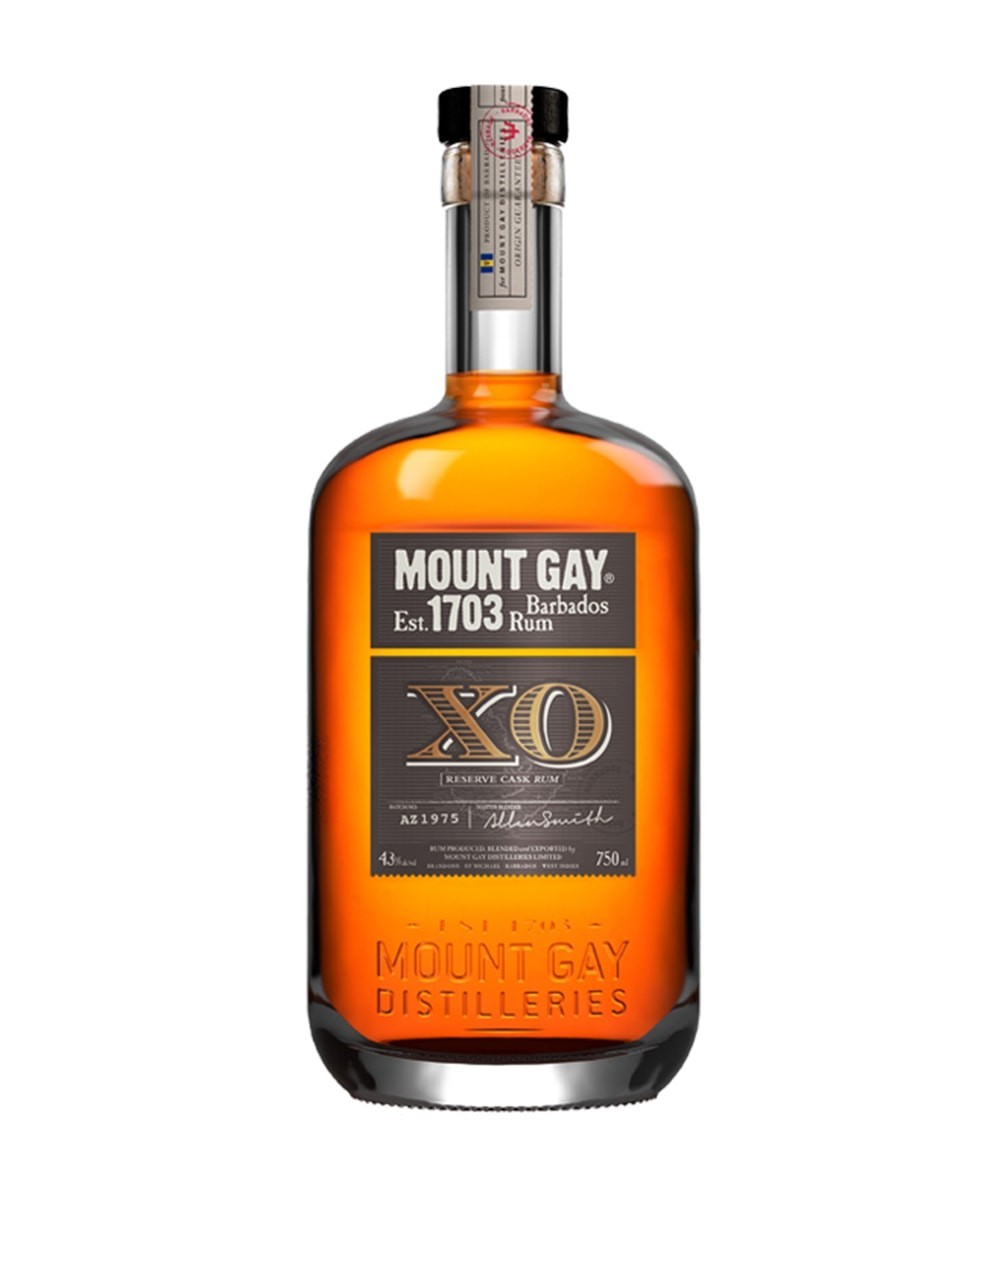 from Terrence mount gay white rum